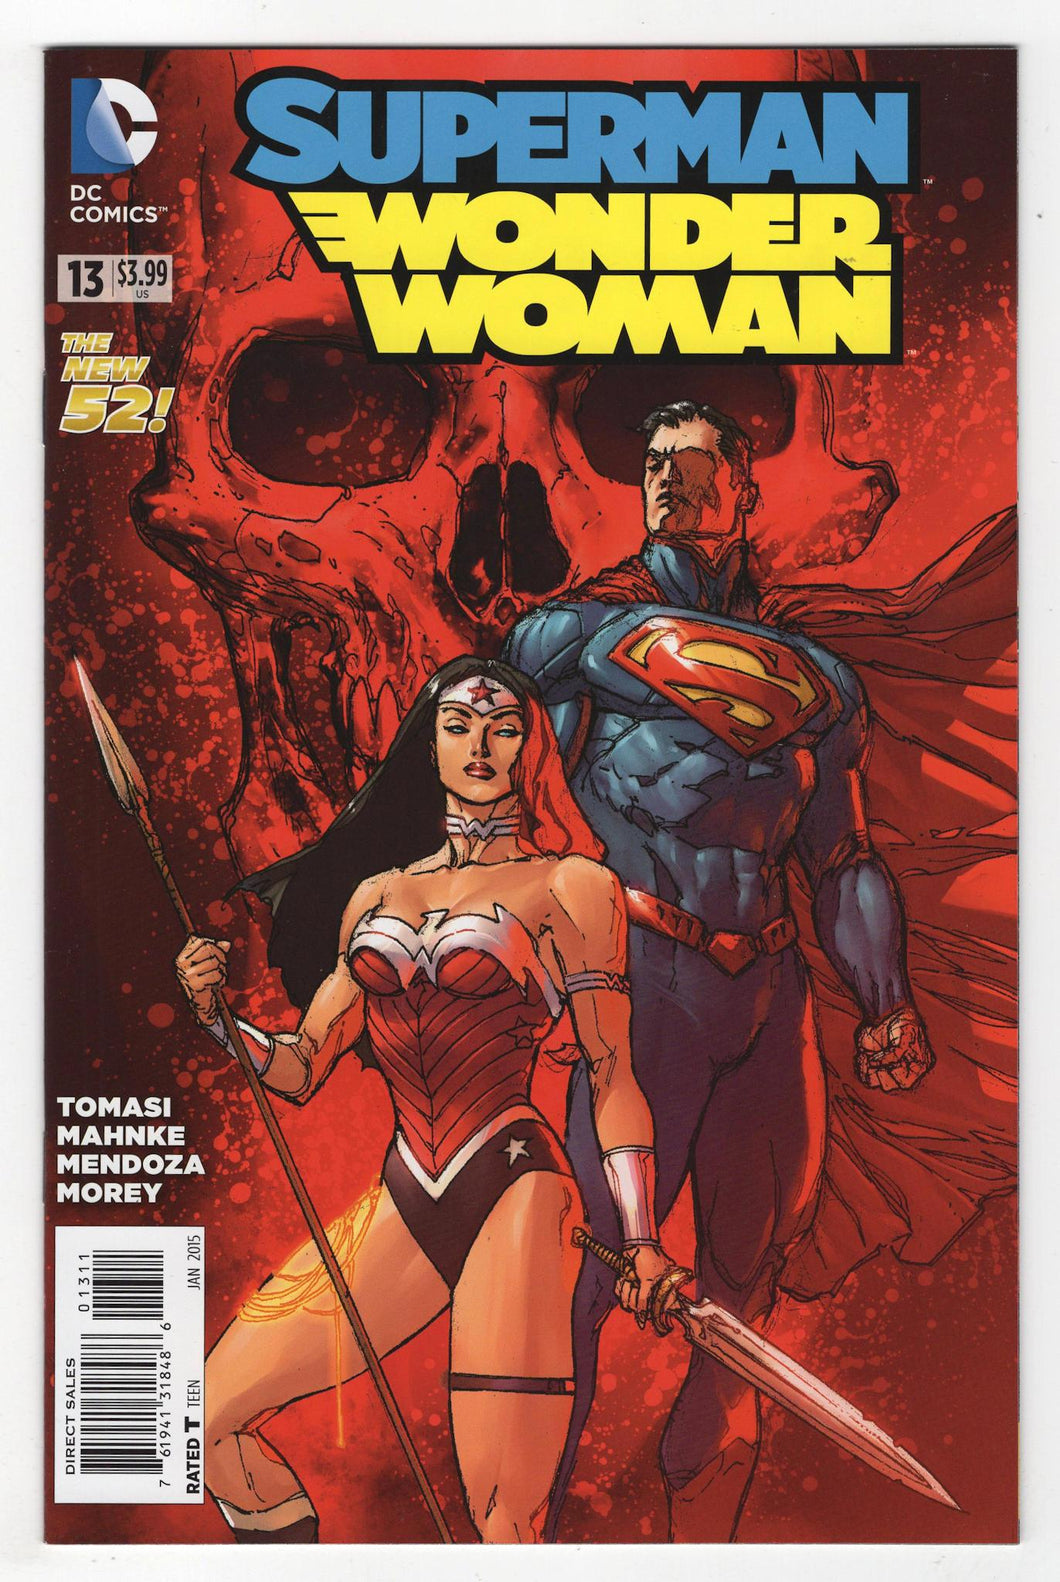 Superman Wonder Woman #13 Cover Front